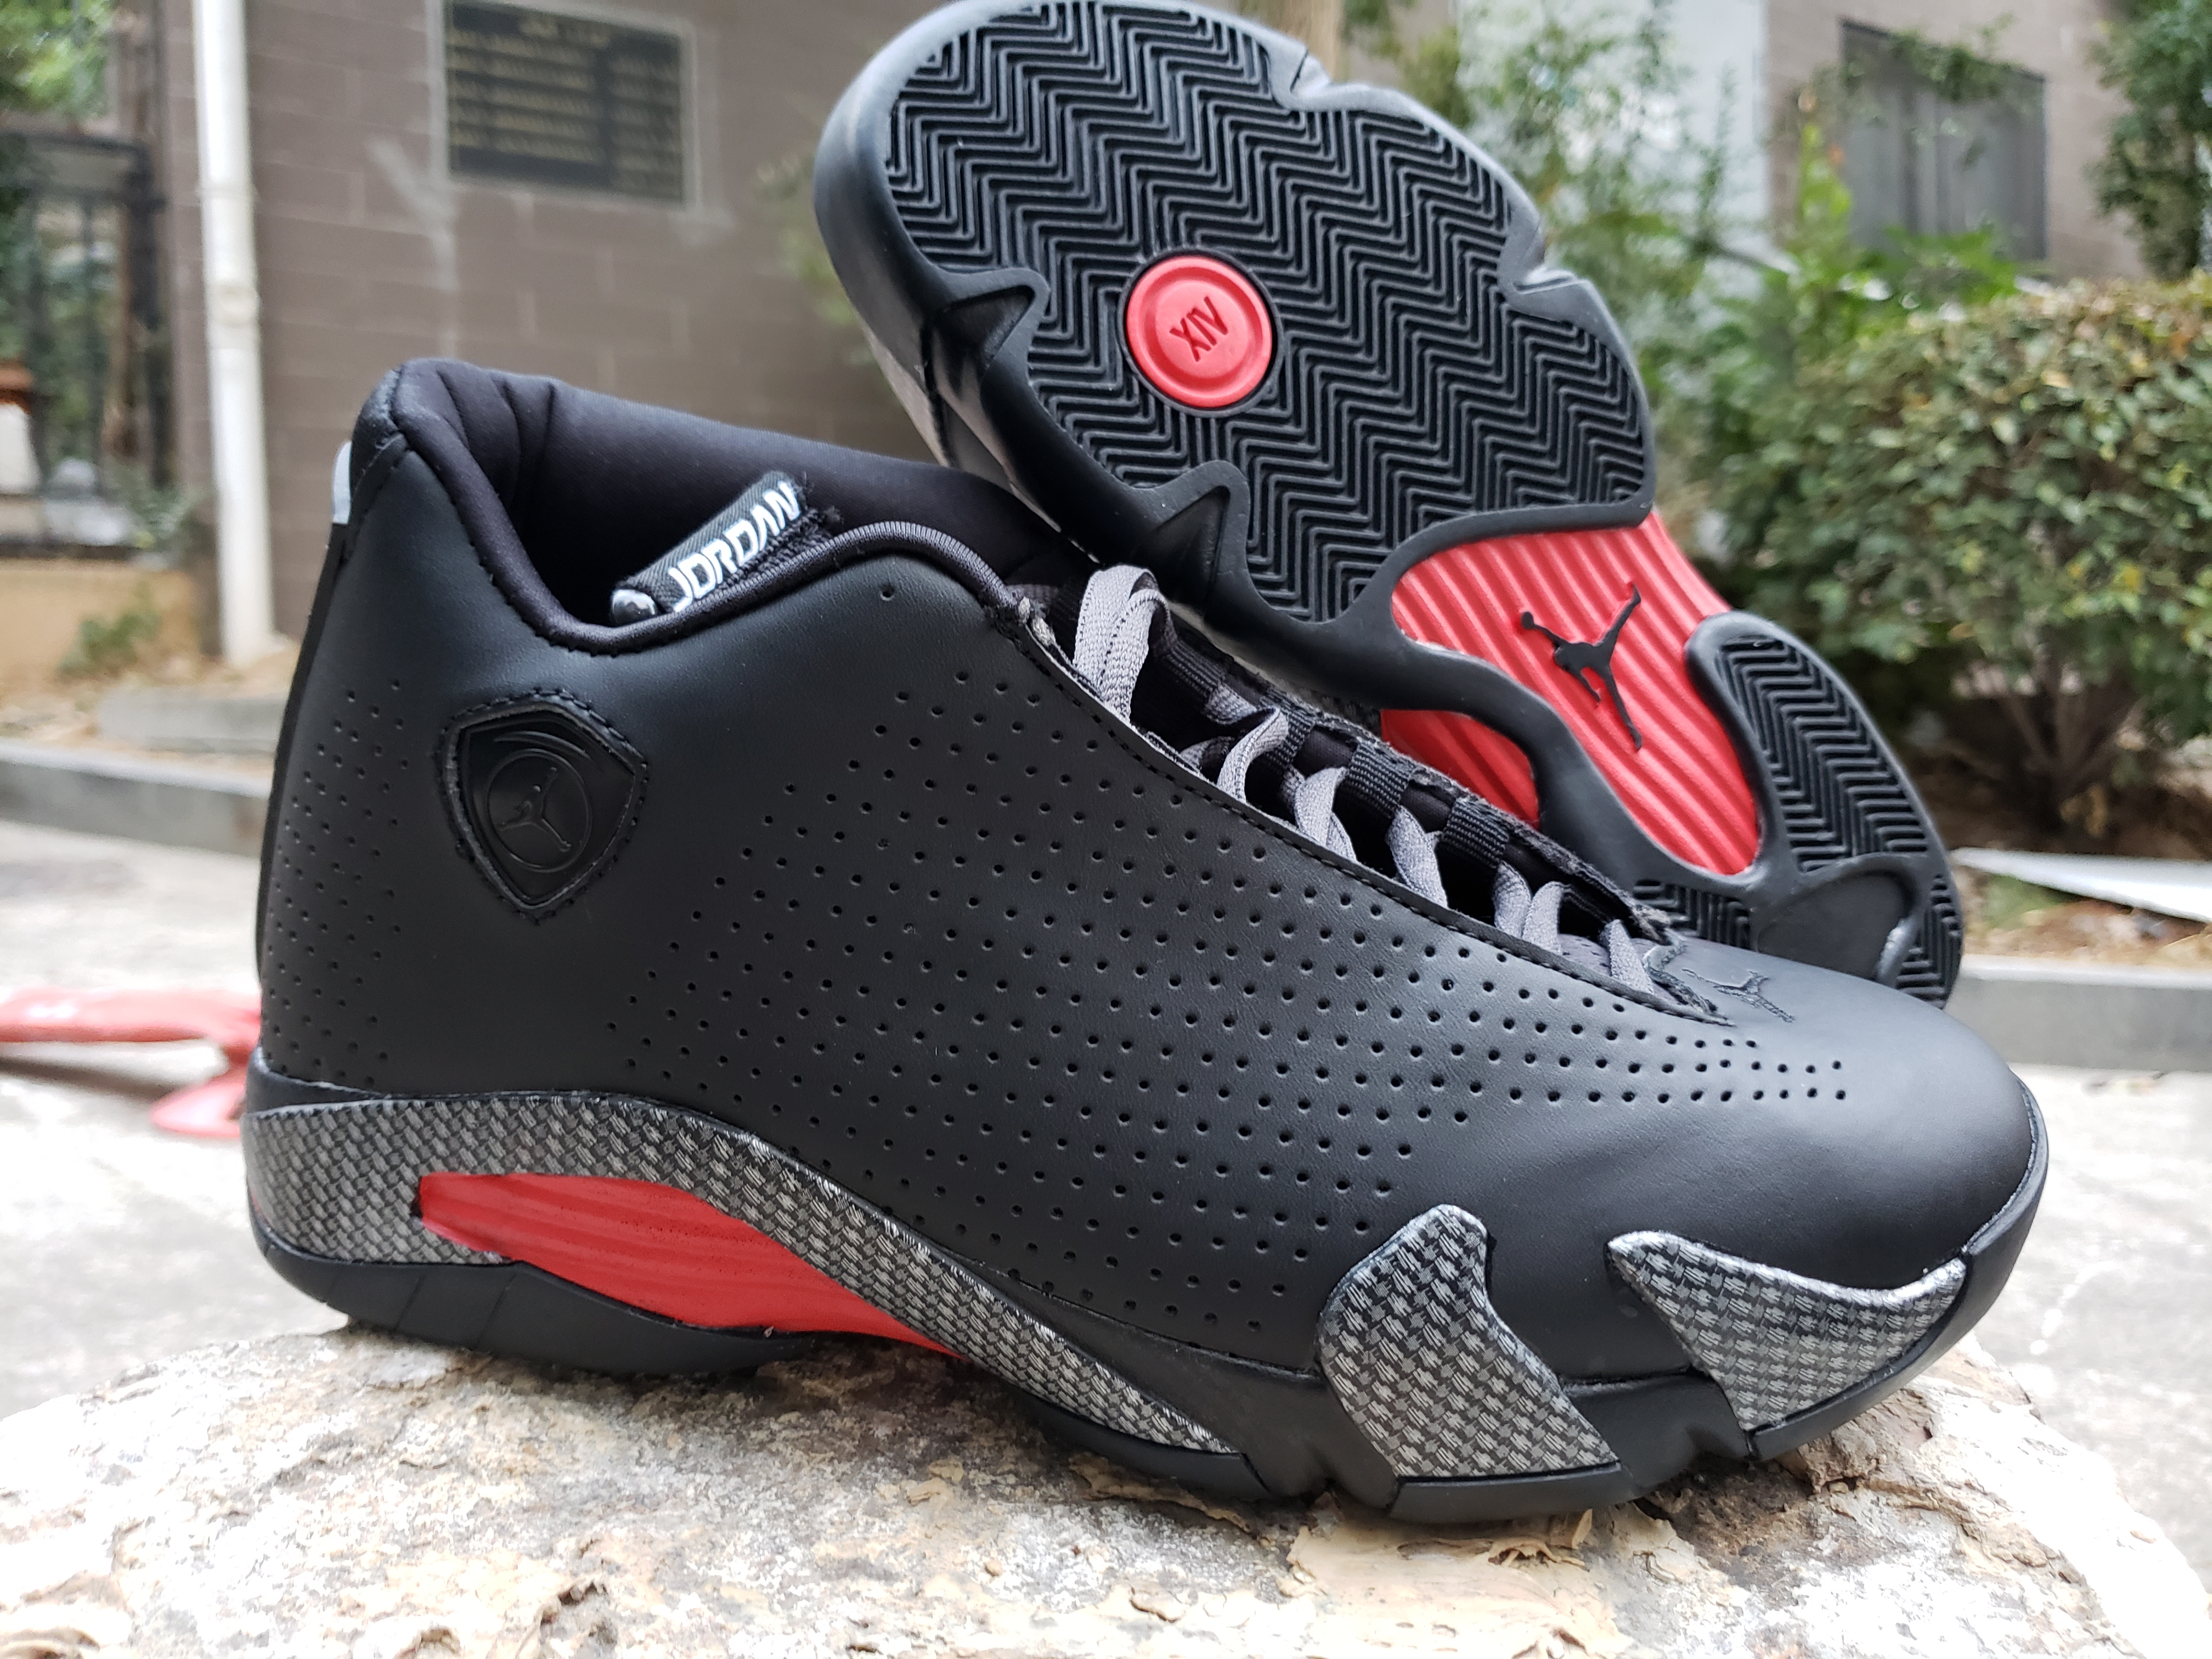 2020 Air Jordan 14 Retro Black Red Shoes